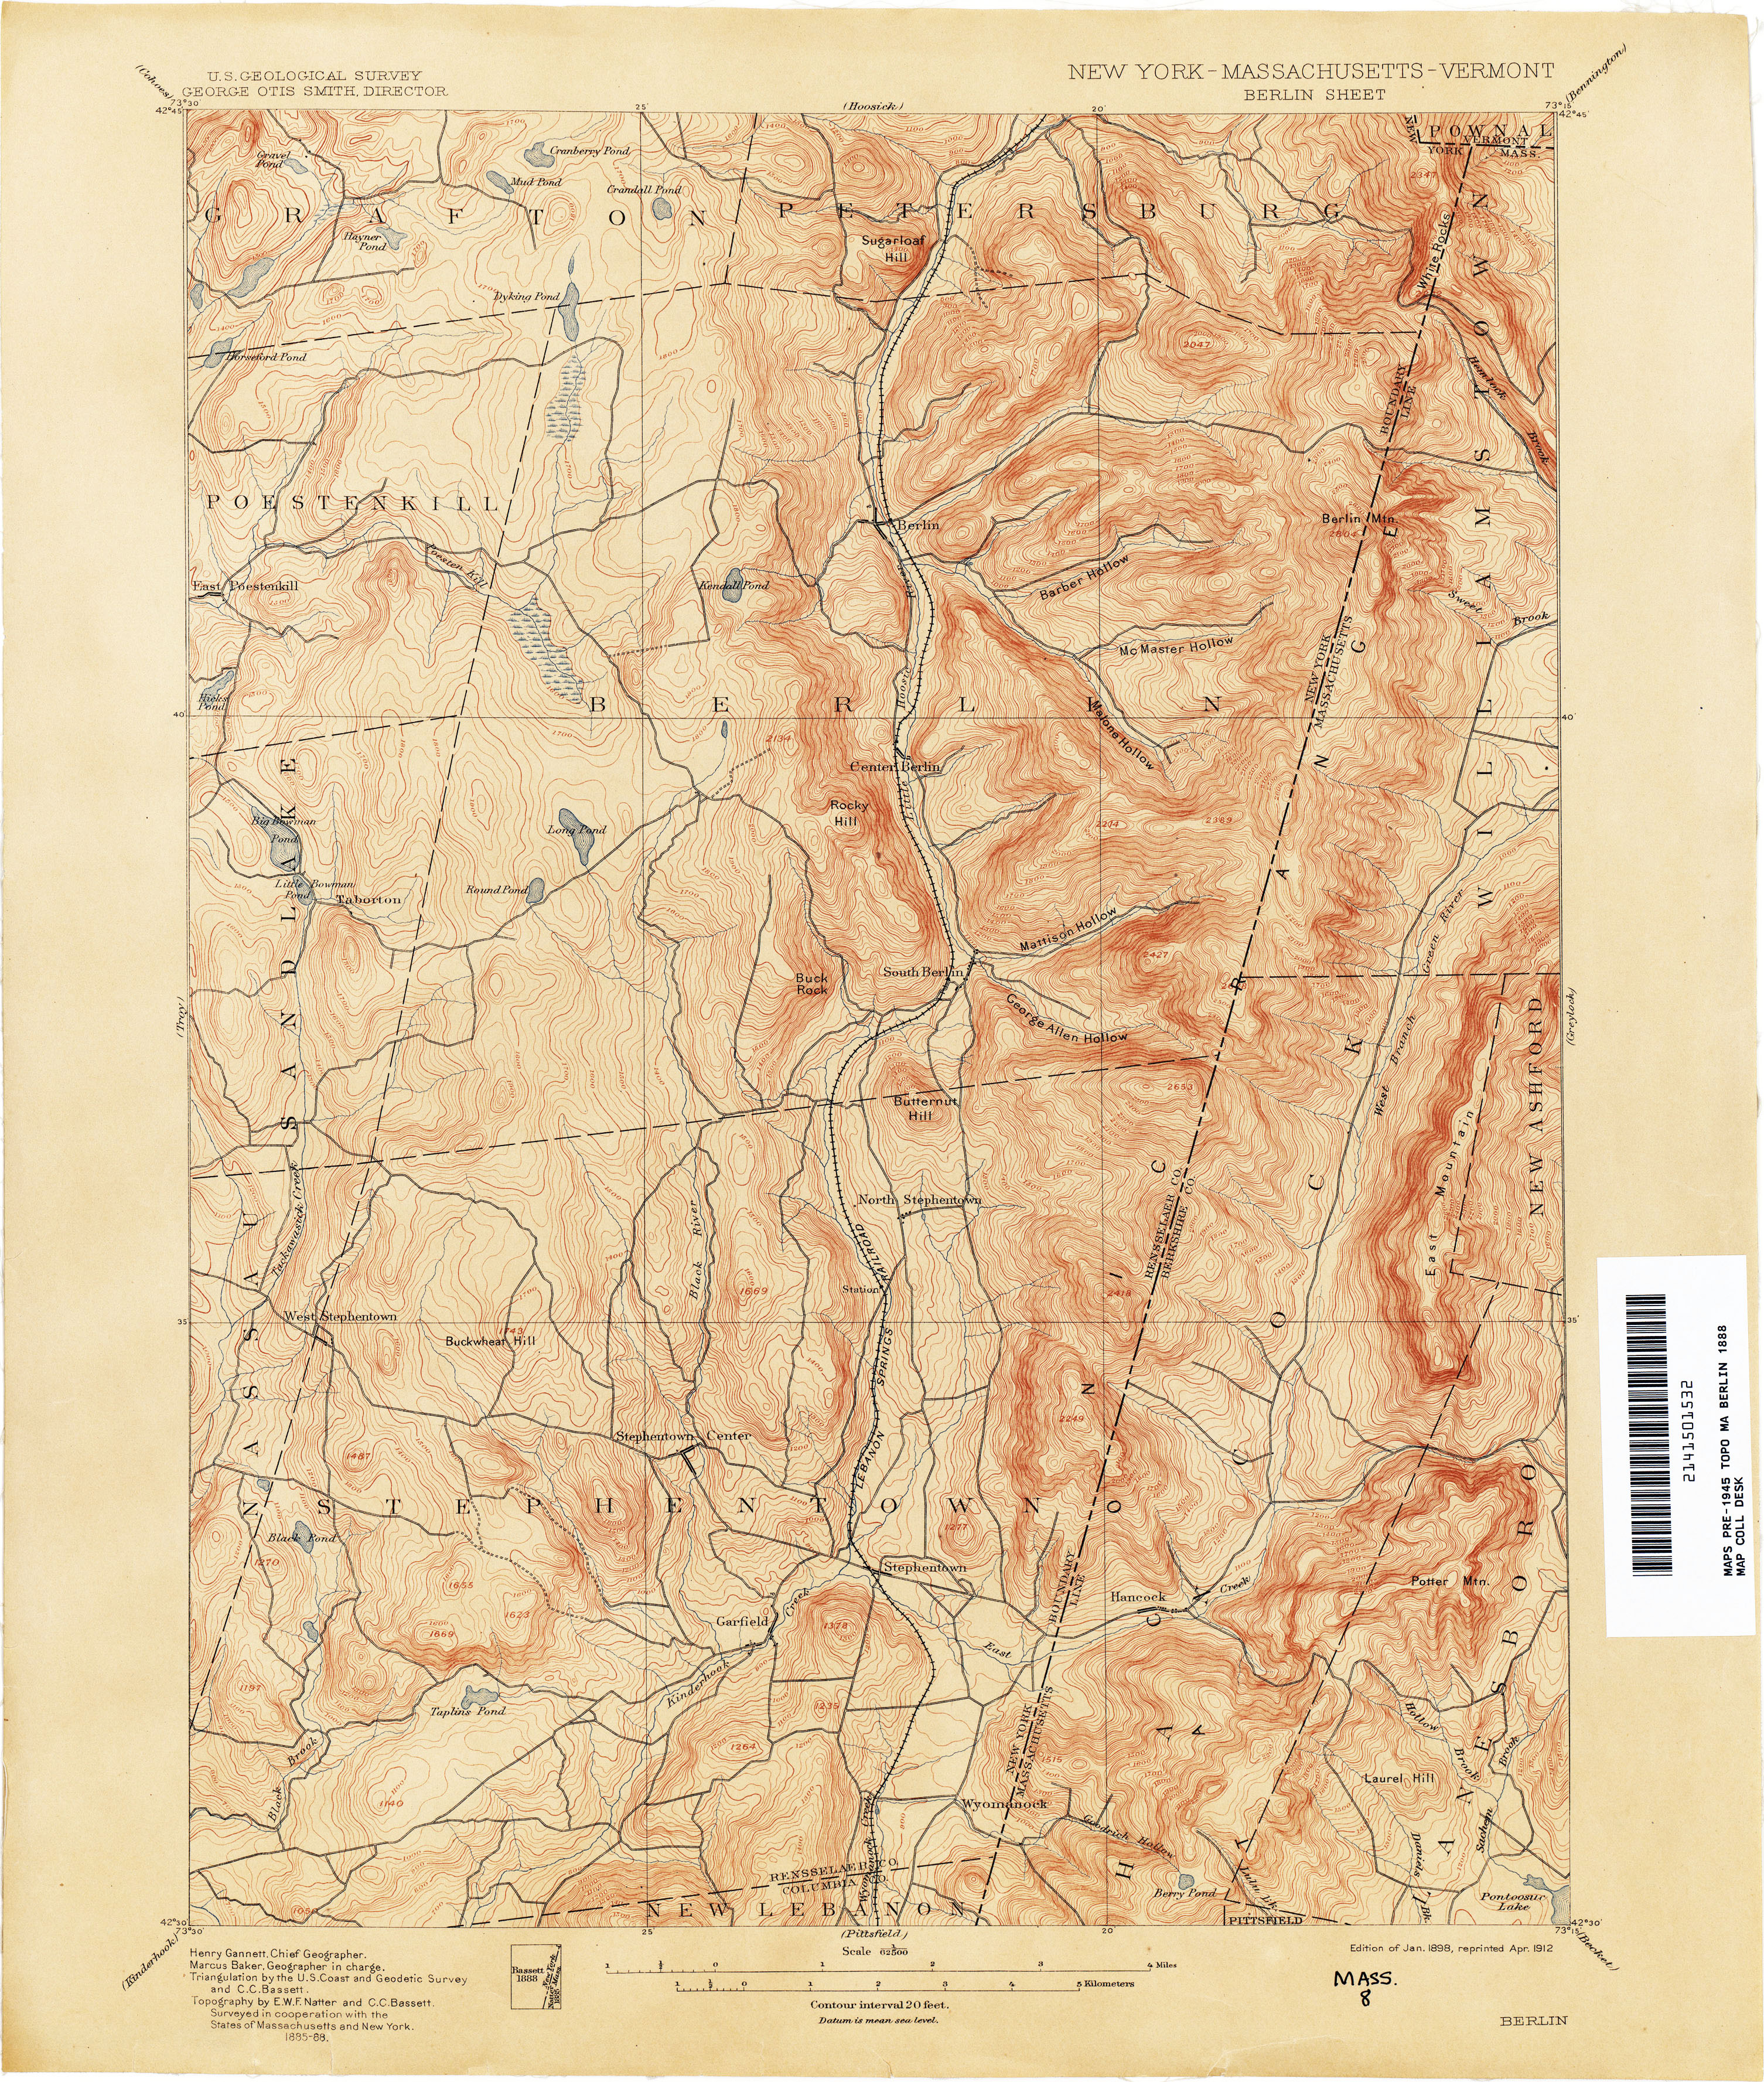 Map Of New York And Vermont.Vermont Historical Topographic Maps Perry Castaneda Map Collection